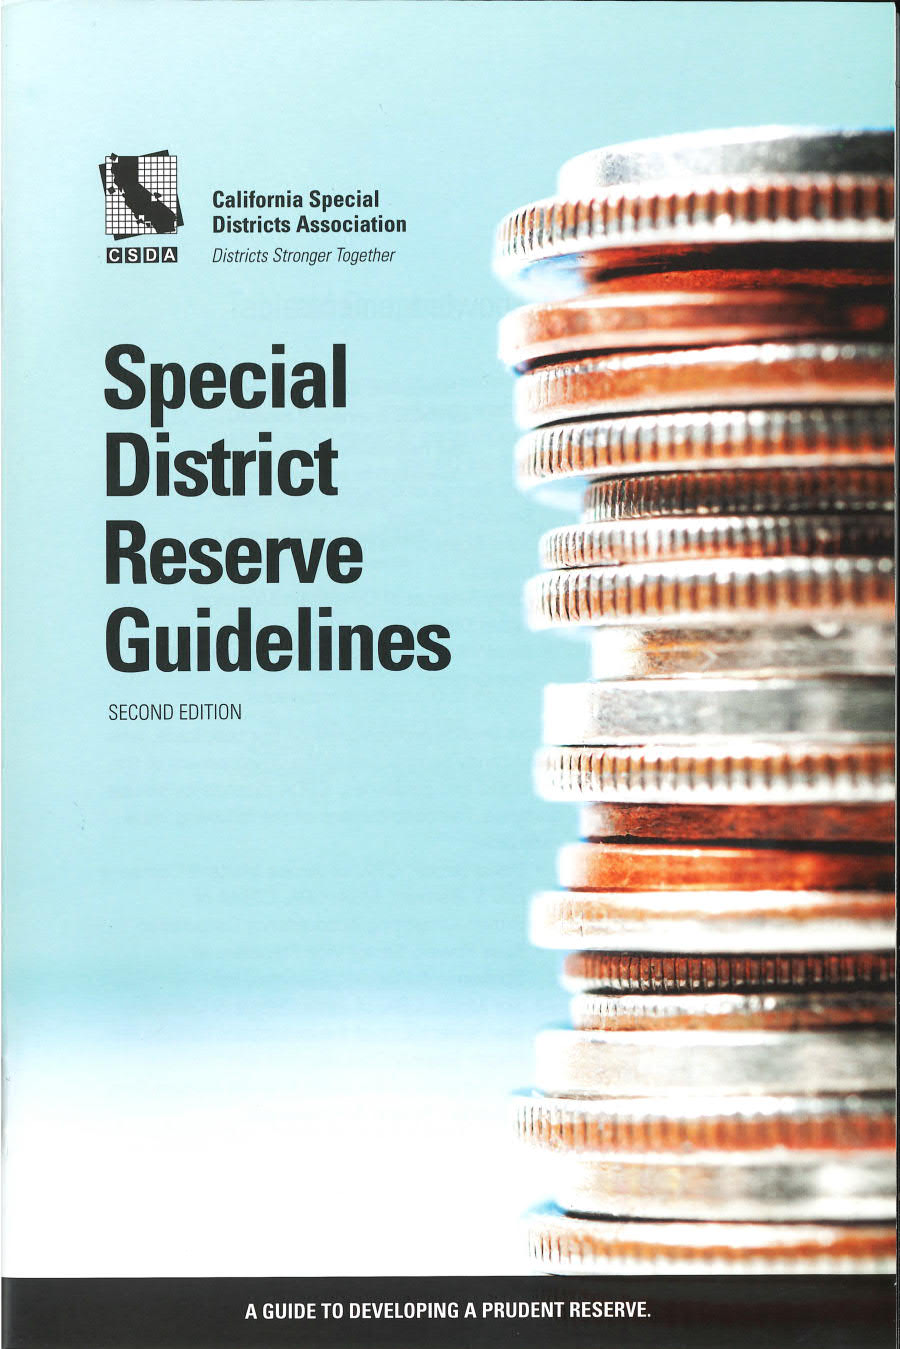 Special District Reserve Guidelines, Second Edition